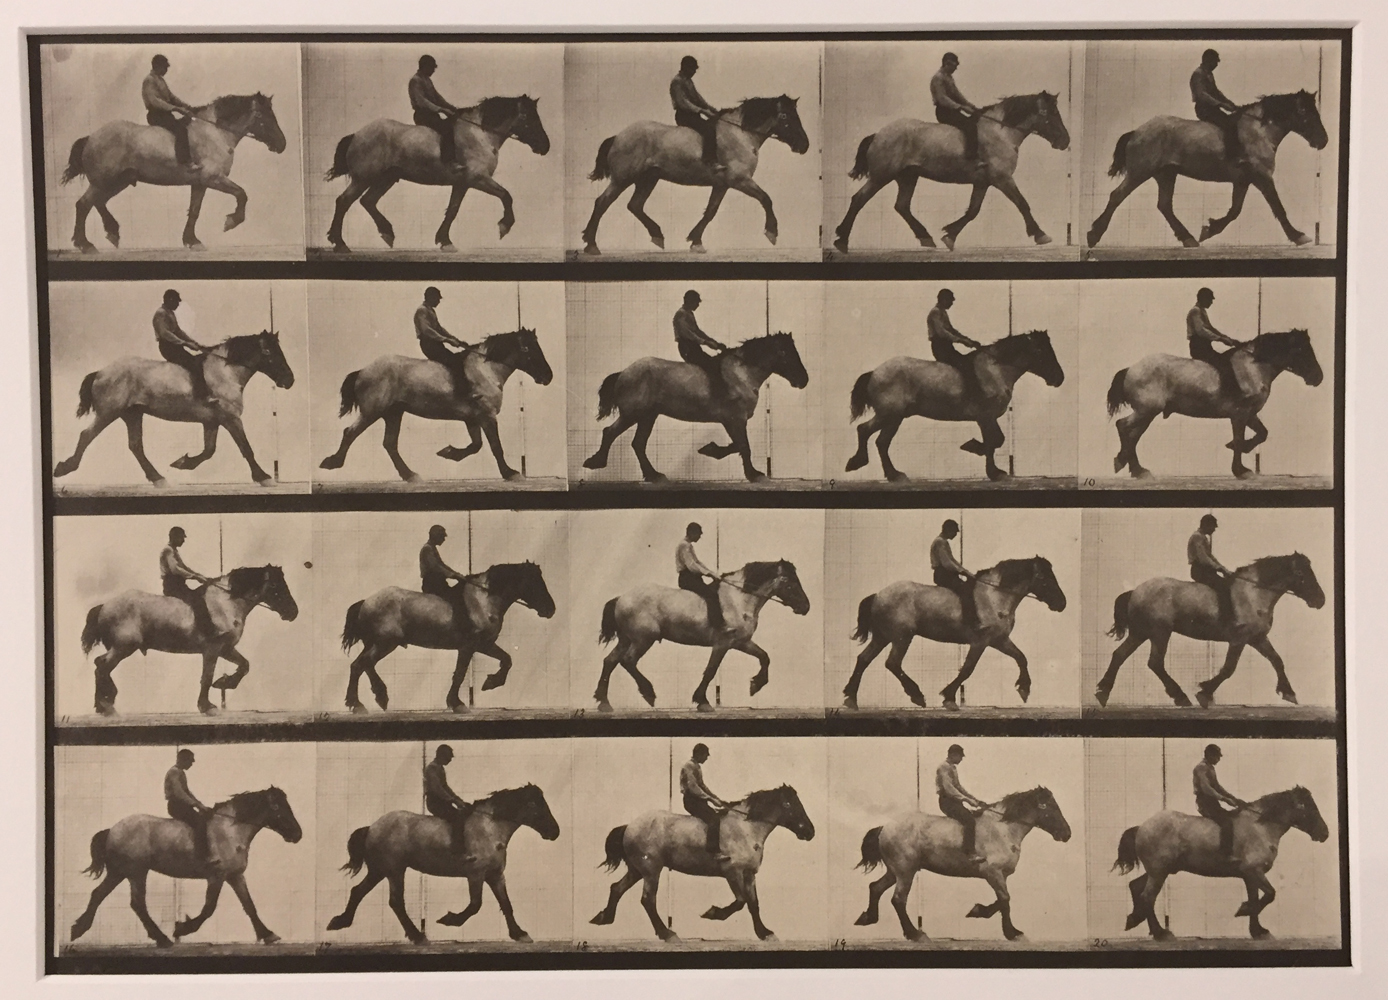 Eadweard Muybridge, Animal Locomotion, Plate 597, 1887, Vintage collotype, 9 x 12.5 inches, price on request